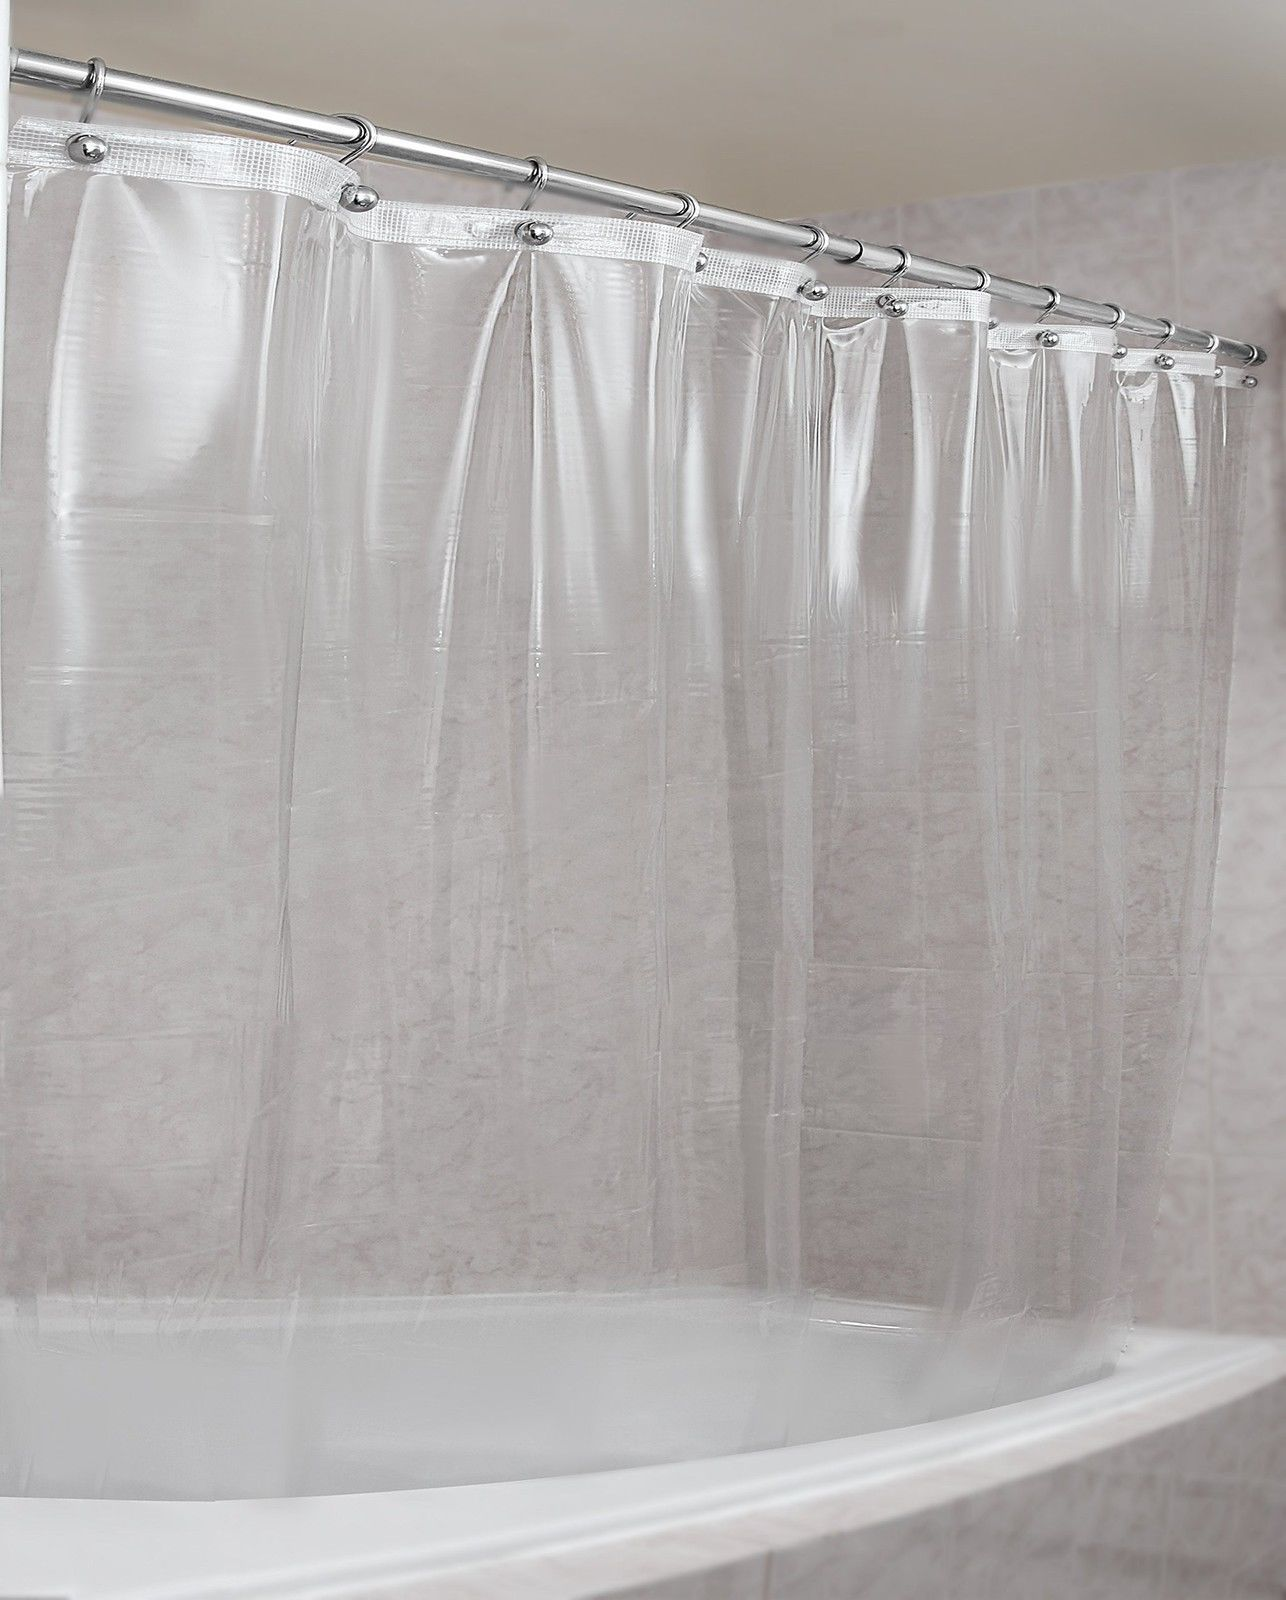 Anti Bacterial Mildew Resistant Bathroom Shower Curtain Liner